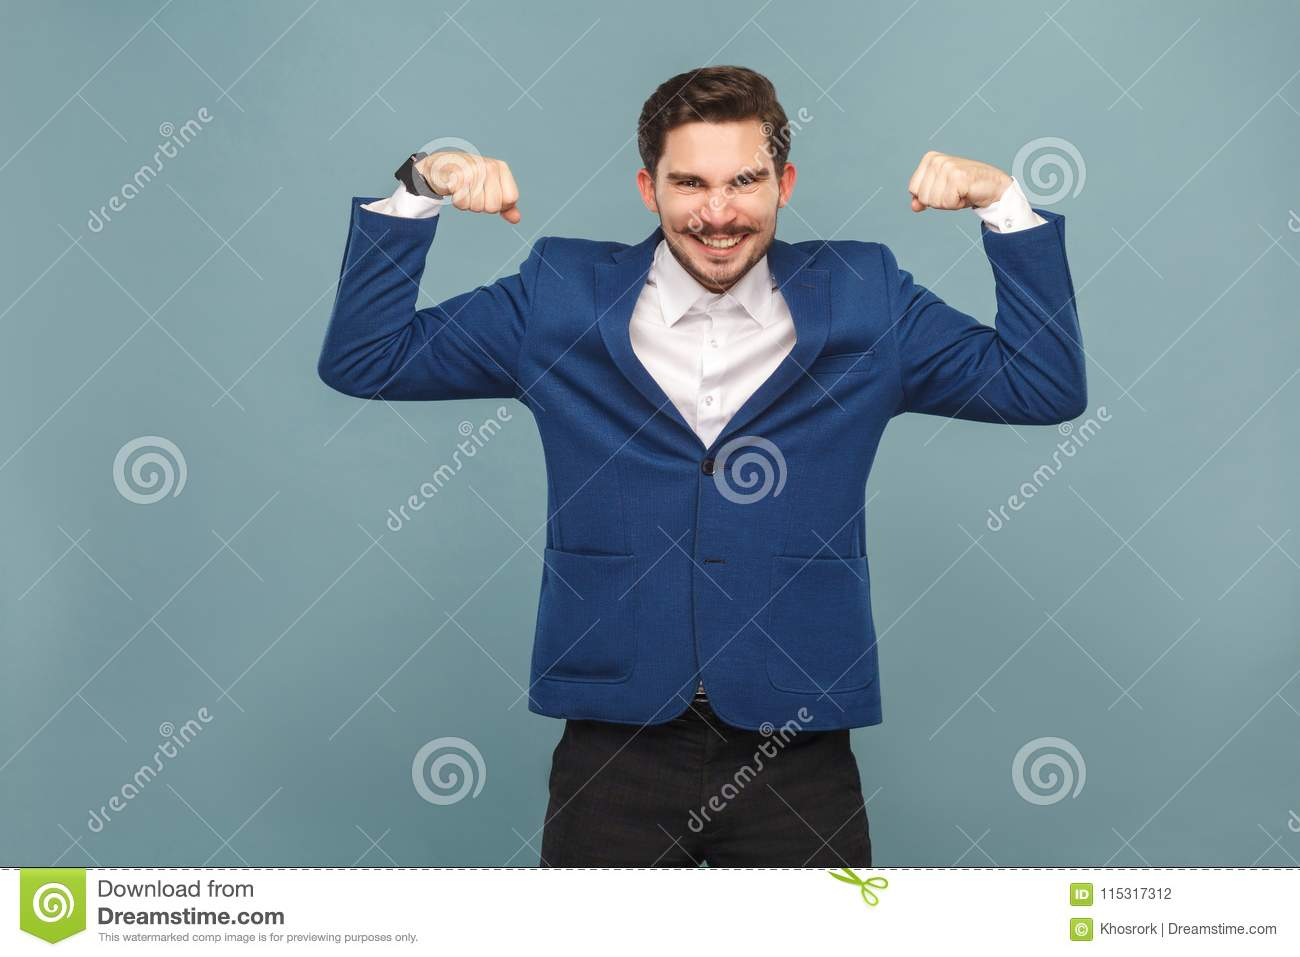 Strong mustache man showing muscule and toothy smiling